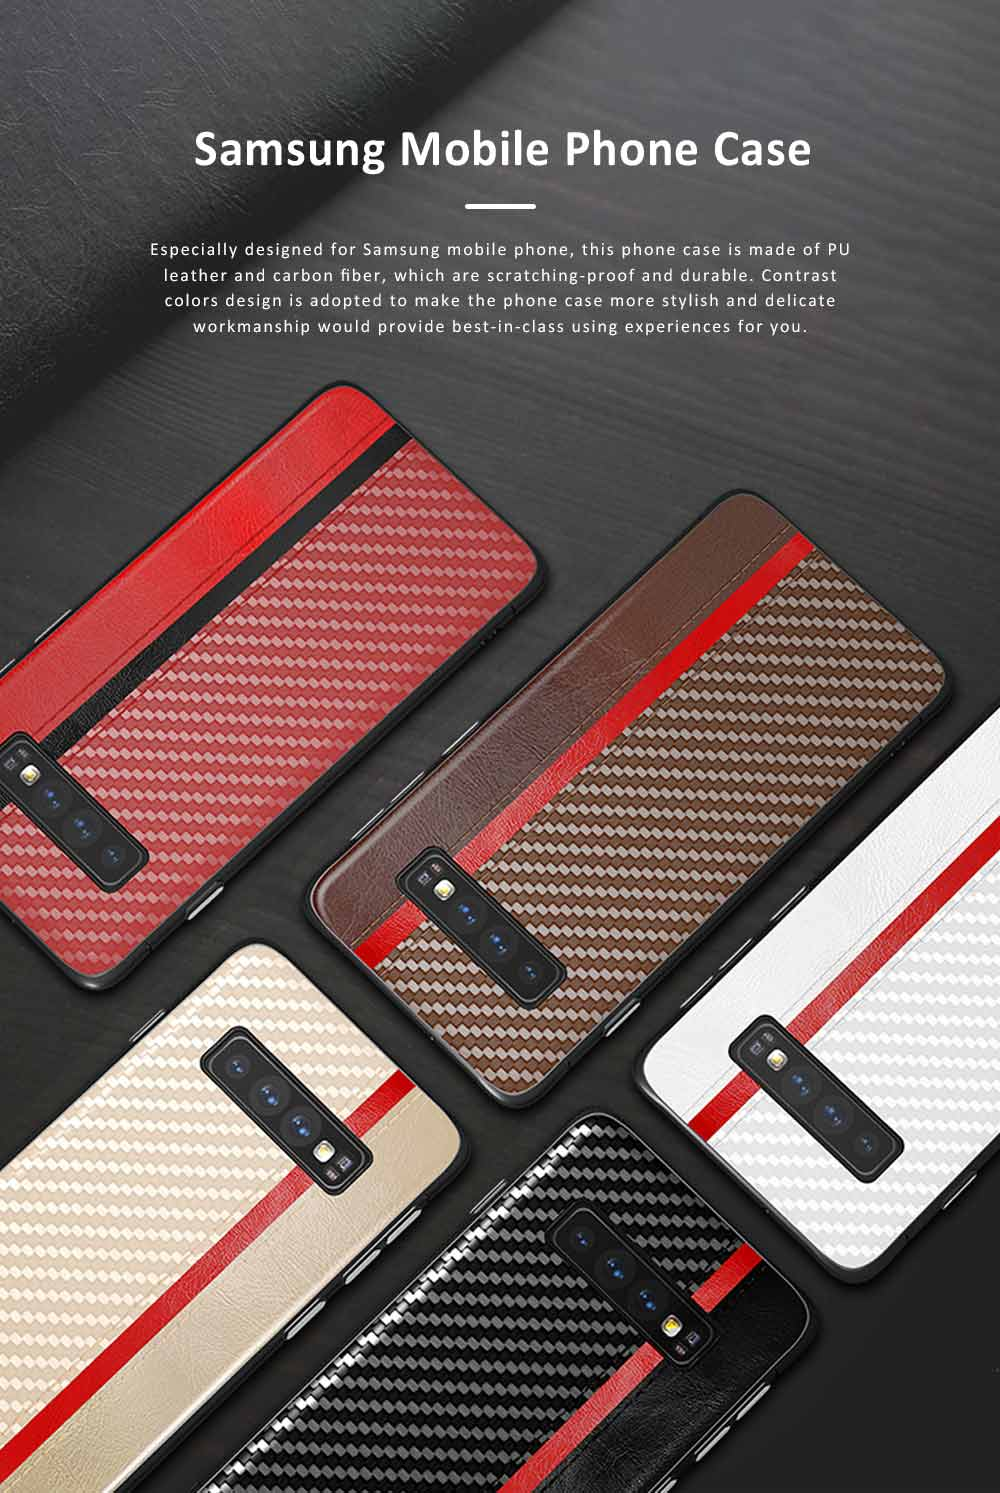 Minimalist Fashion Samsung Phone Case with PU Leather Carbon Fiber Combination, Business Mobile Phone Case for Samsung S8+ S9+ S10+ S10E 0